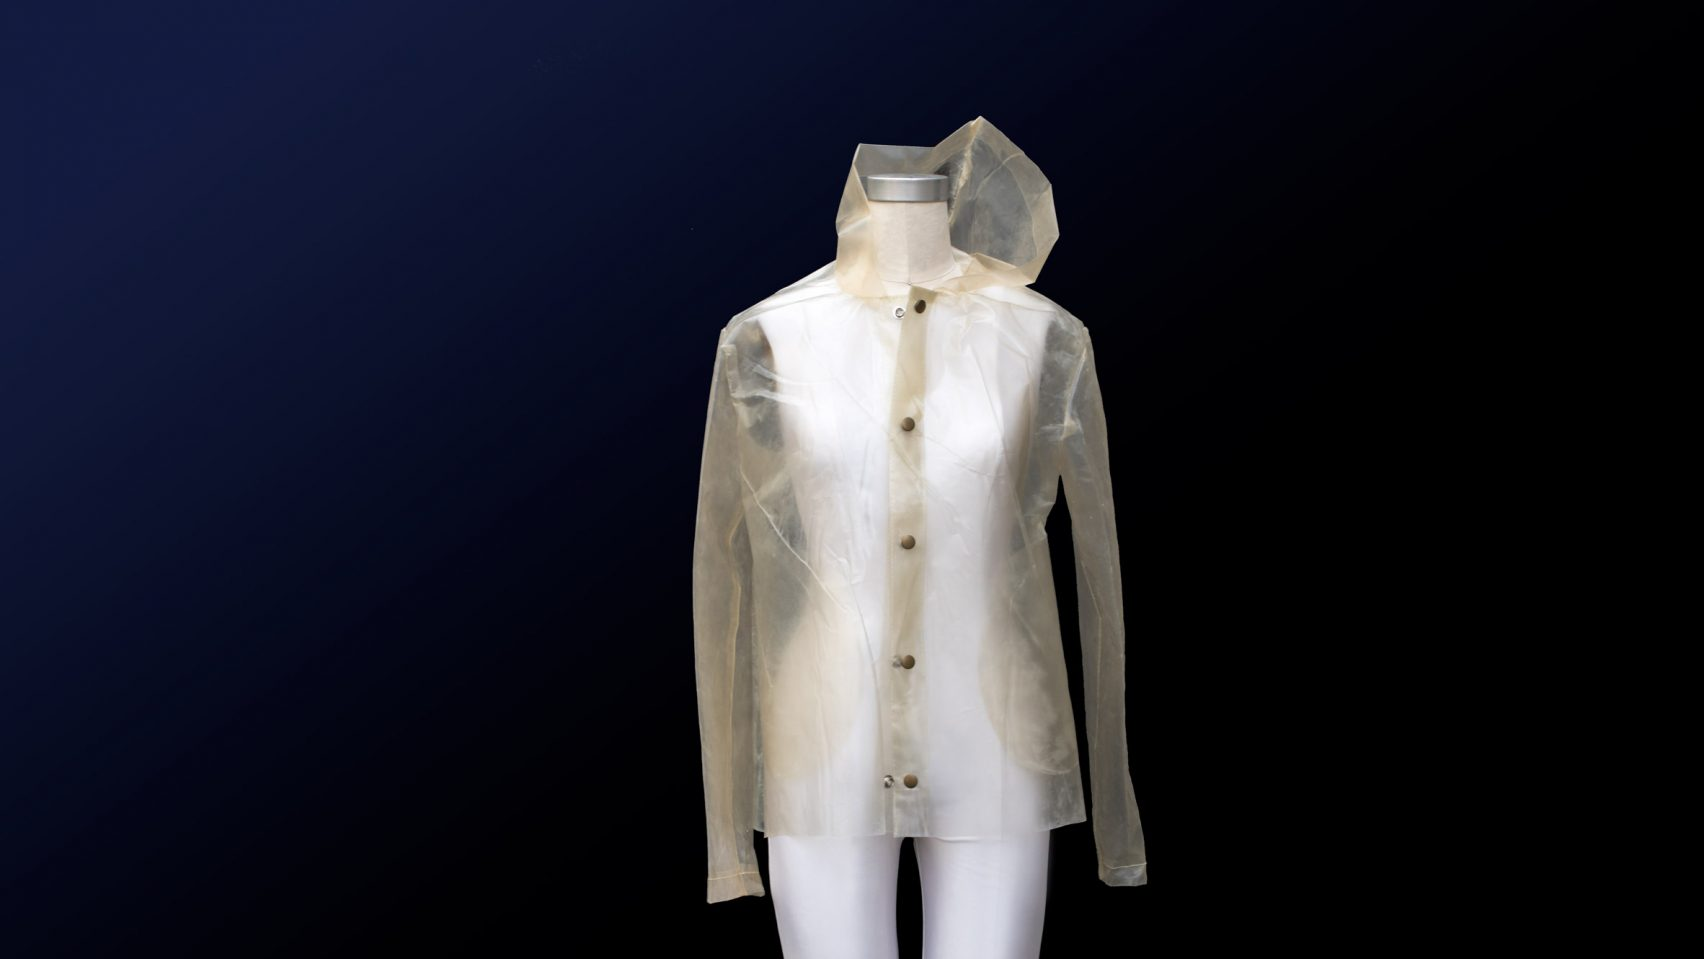 algae bioplastics raincoat